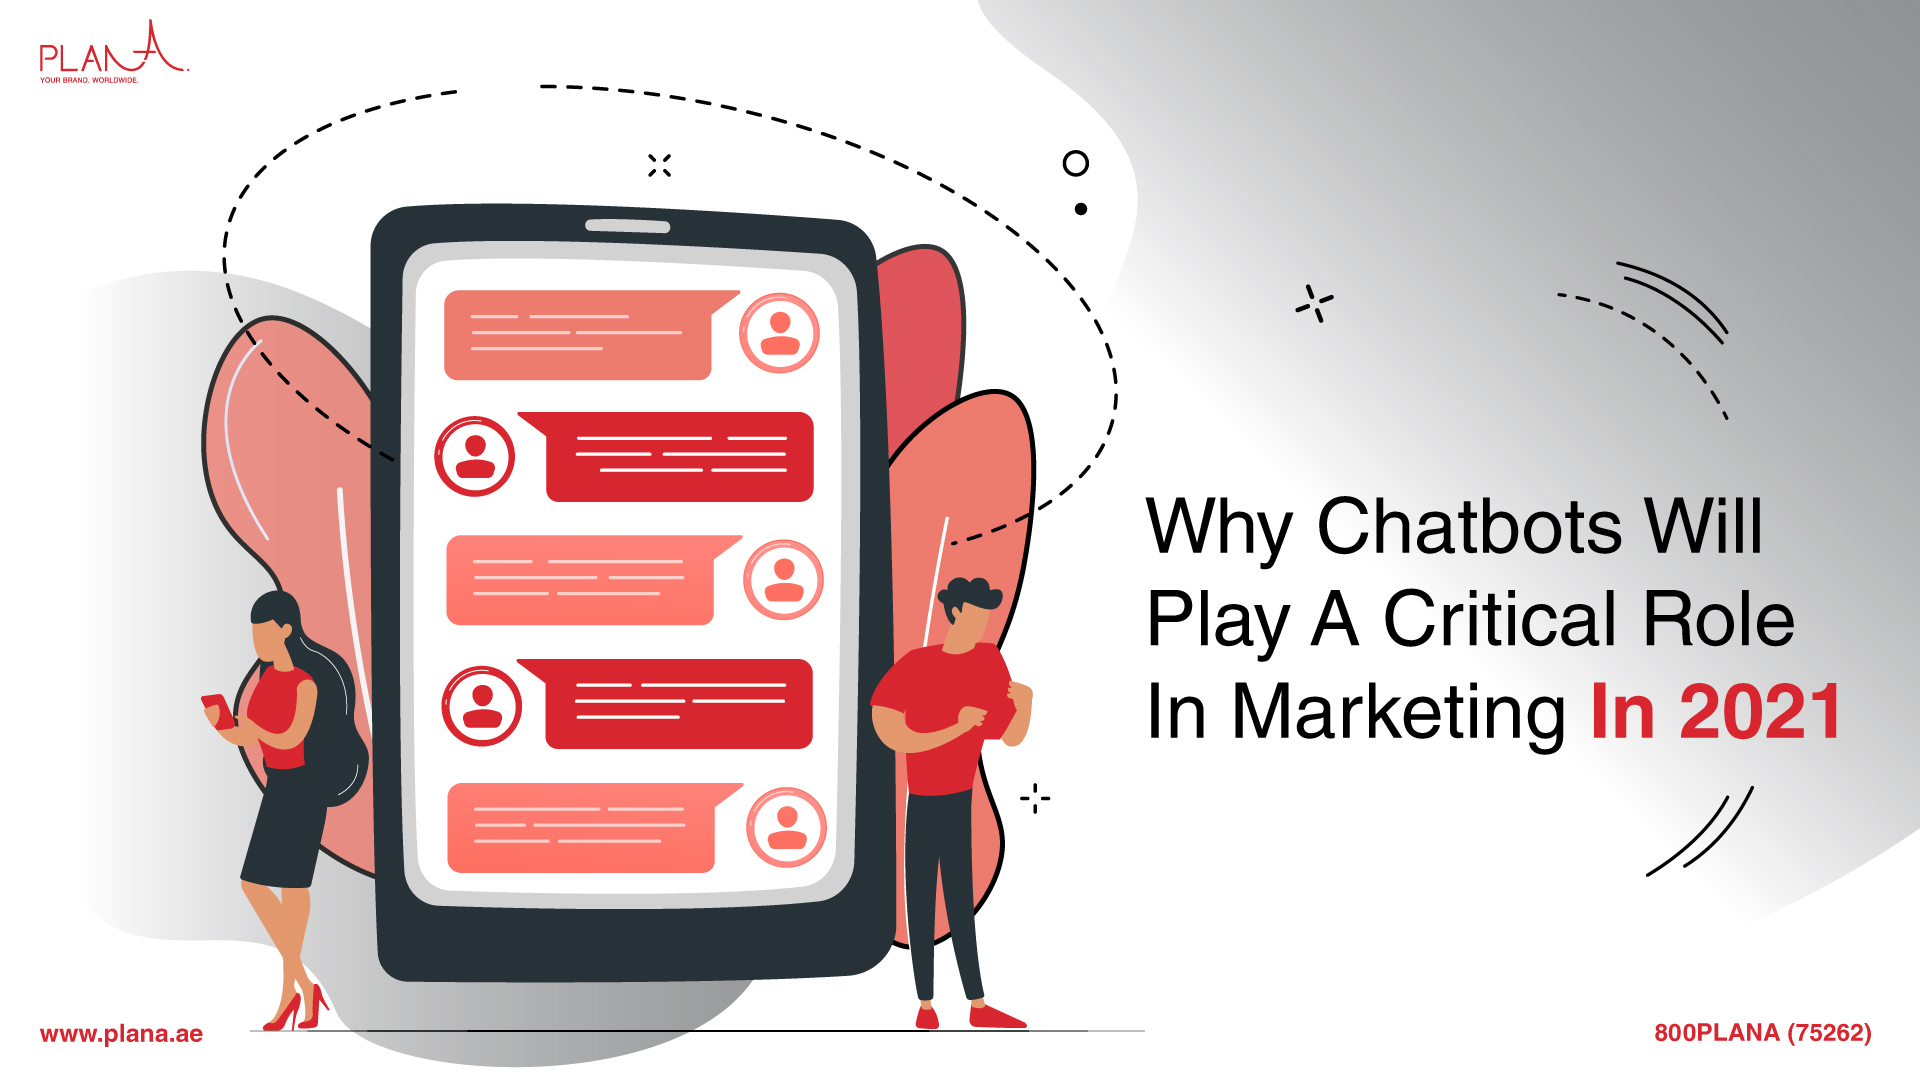 Why Chatbots Will Play A Critical Role in Marketing in 2021?